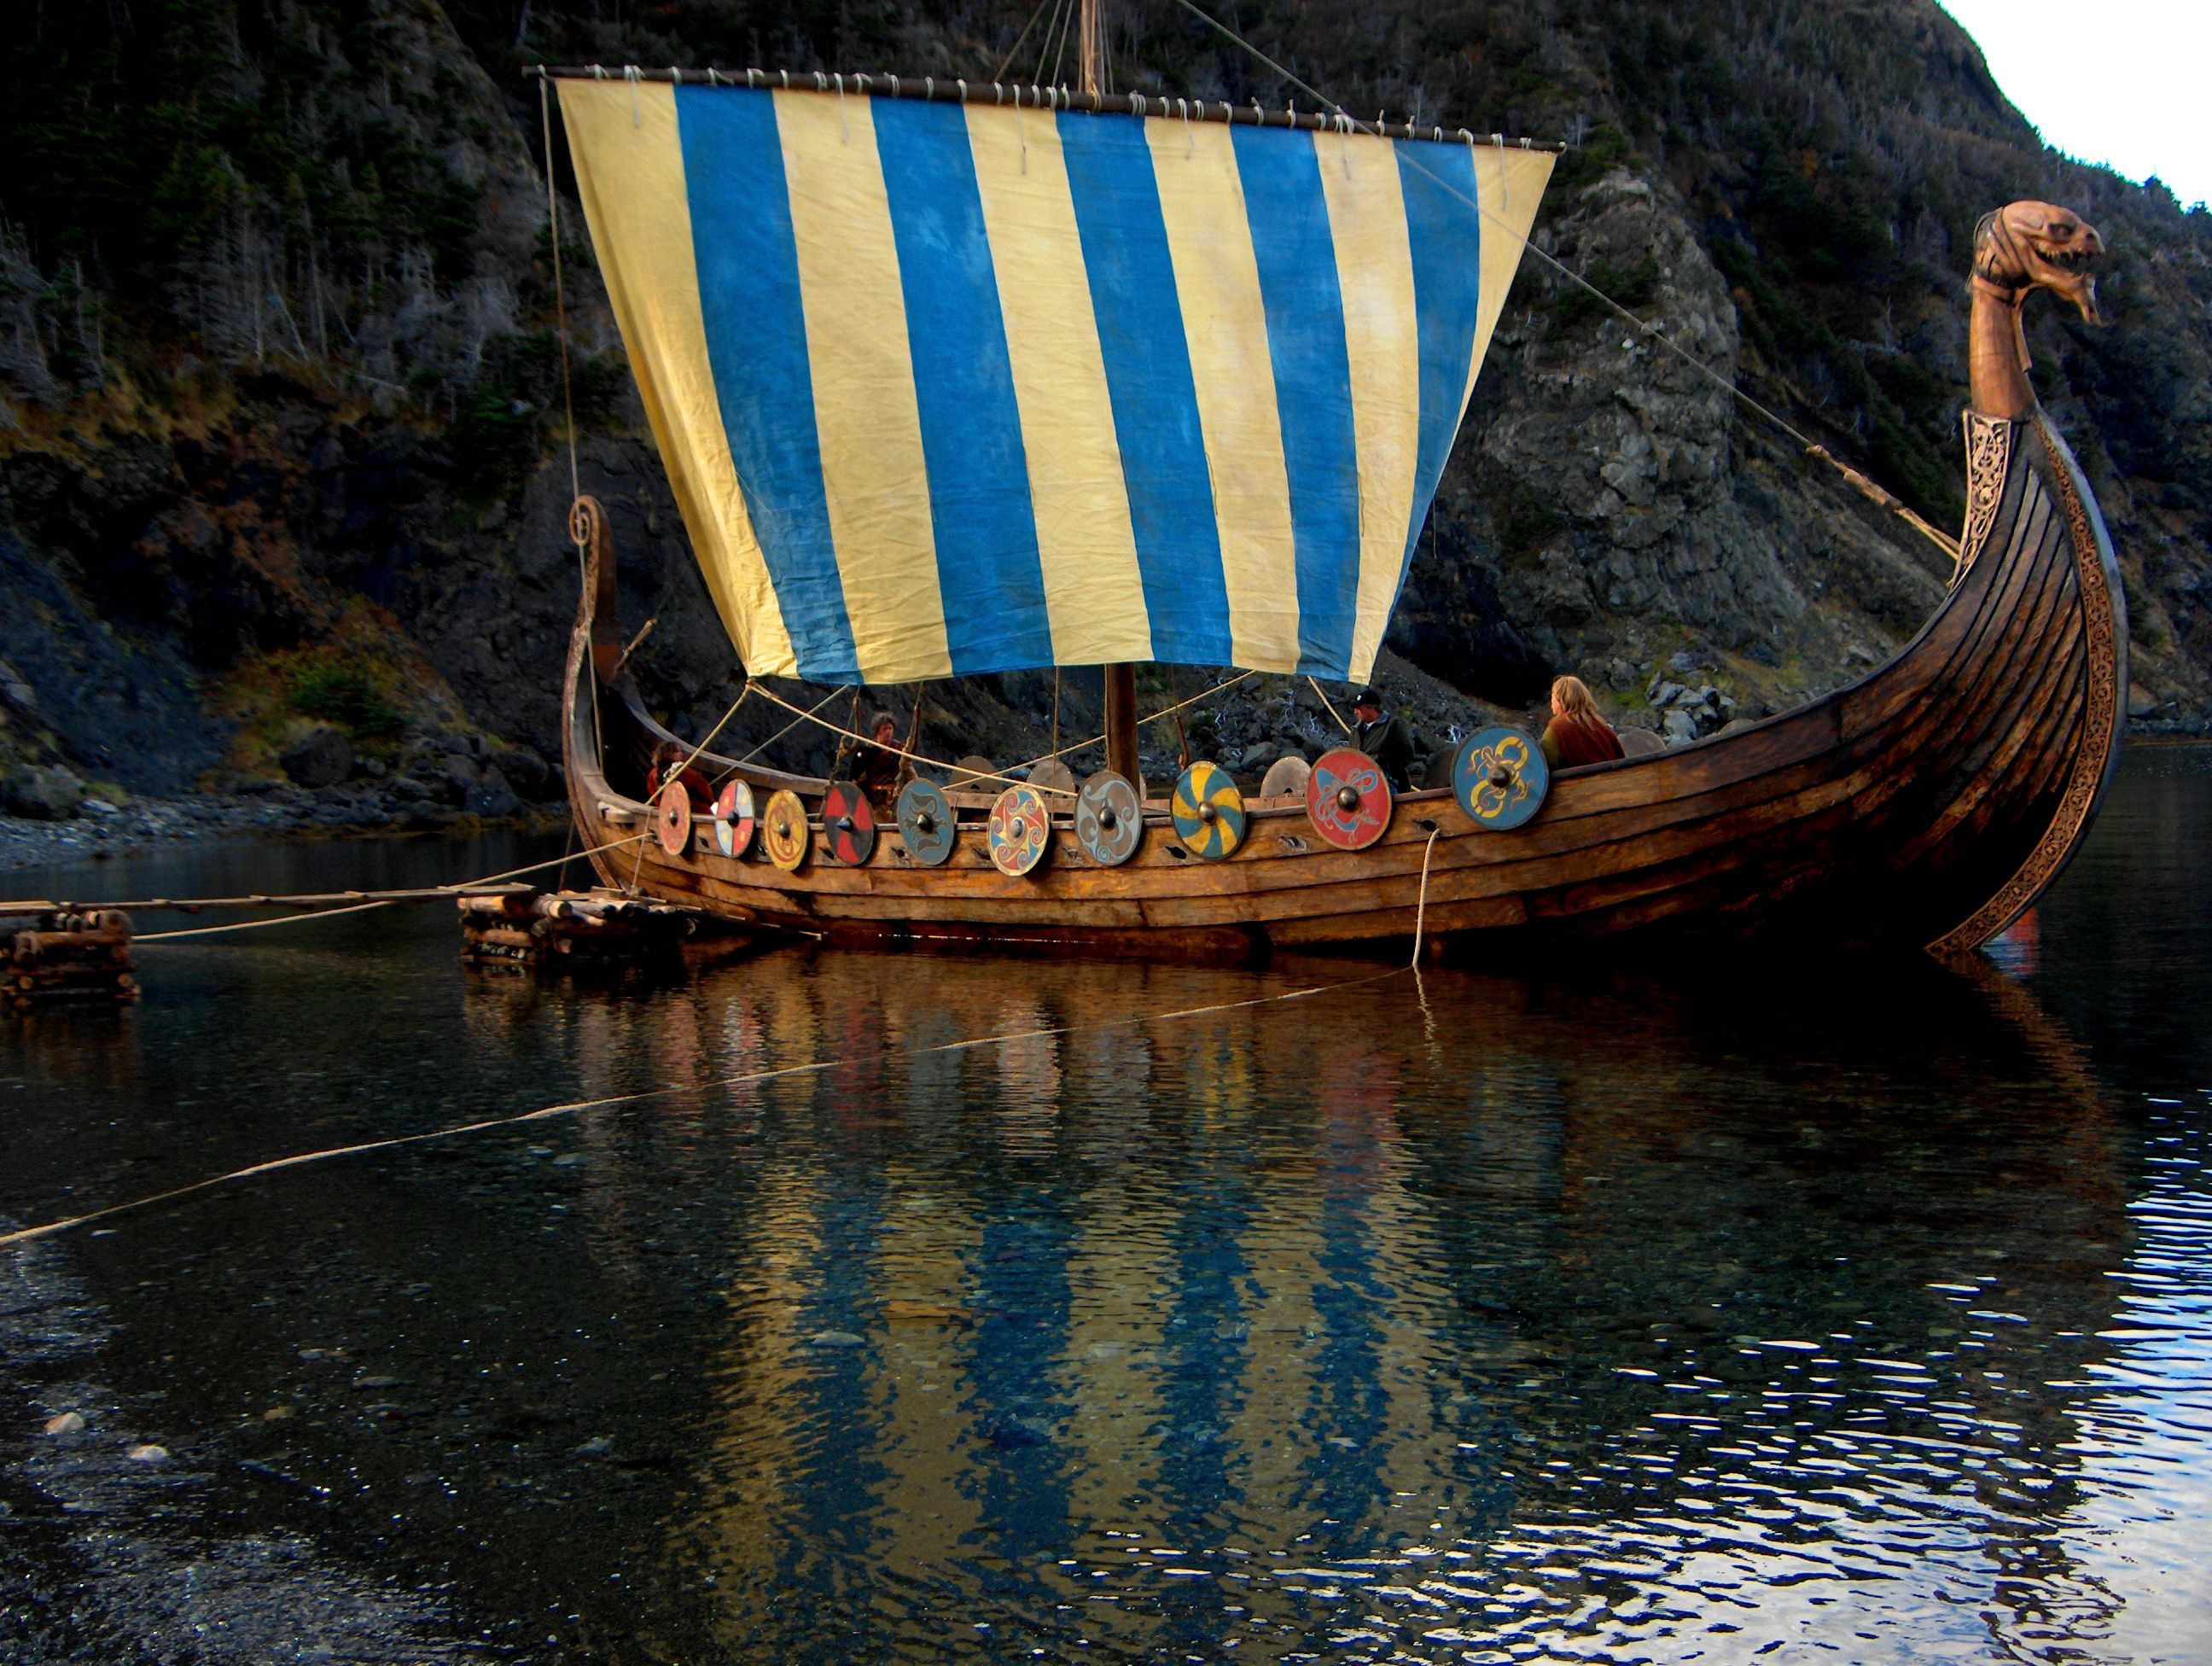 83 best images about Viking Long Boats on Pinterest | Boats ...